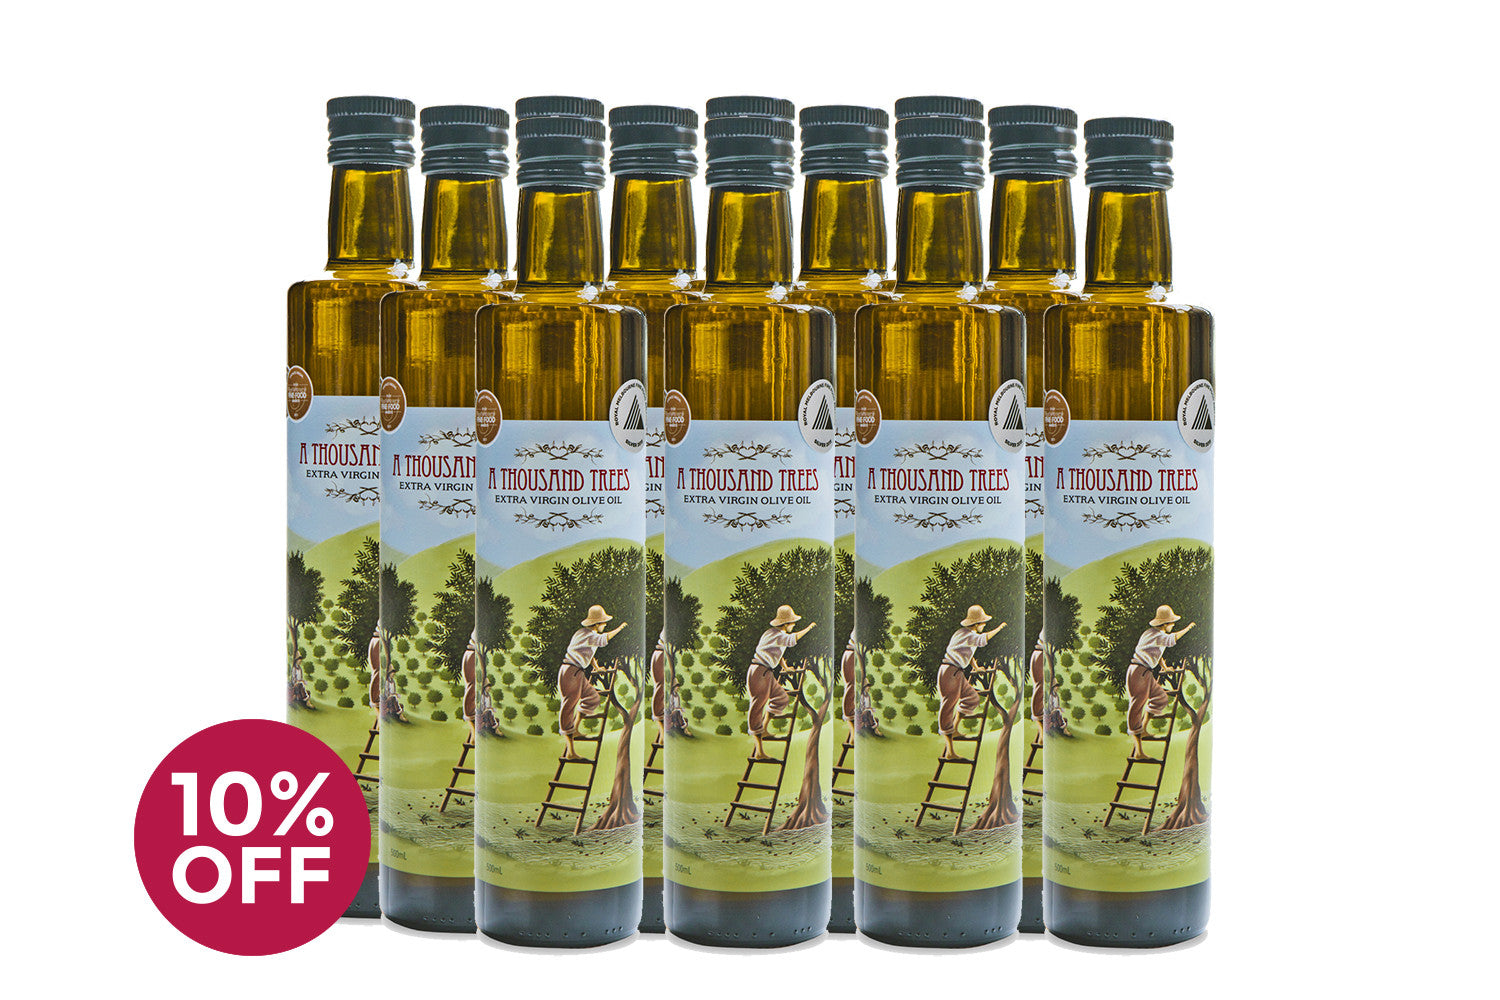 500ML Extra Virgin Olive Oil Twelve Pack